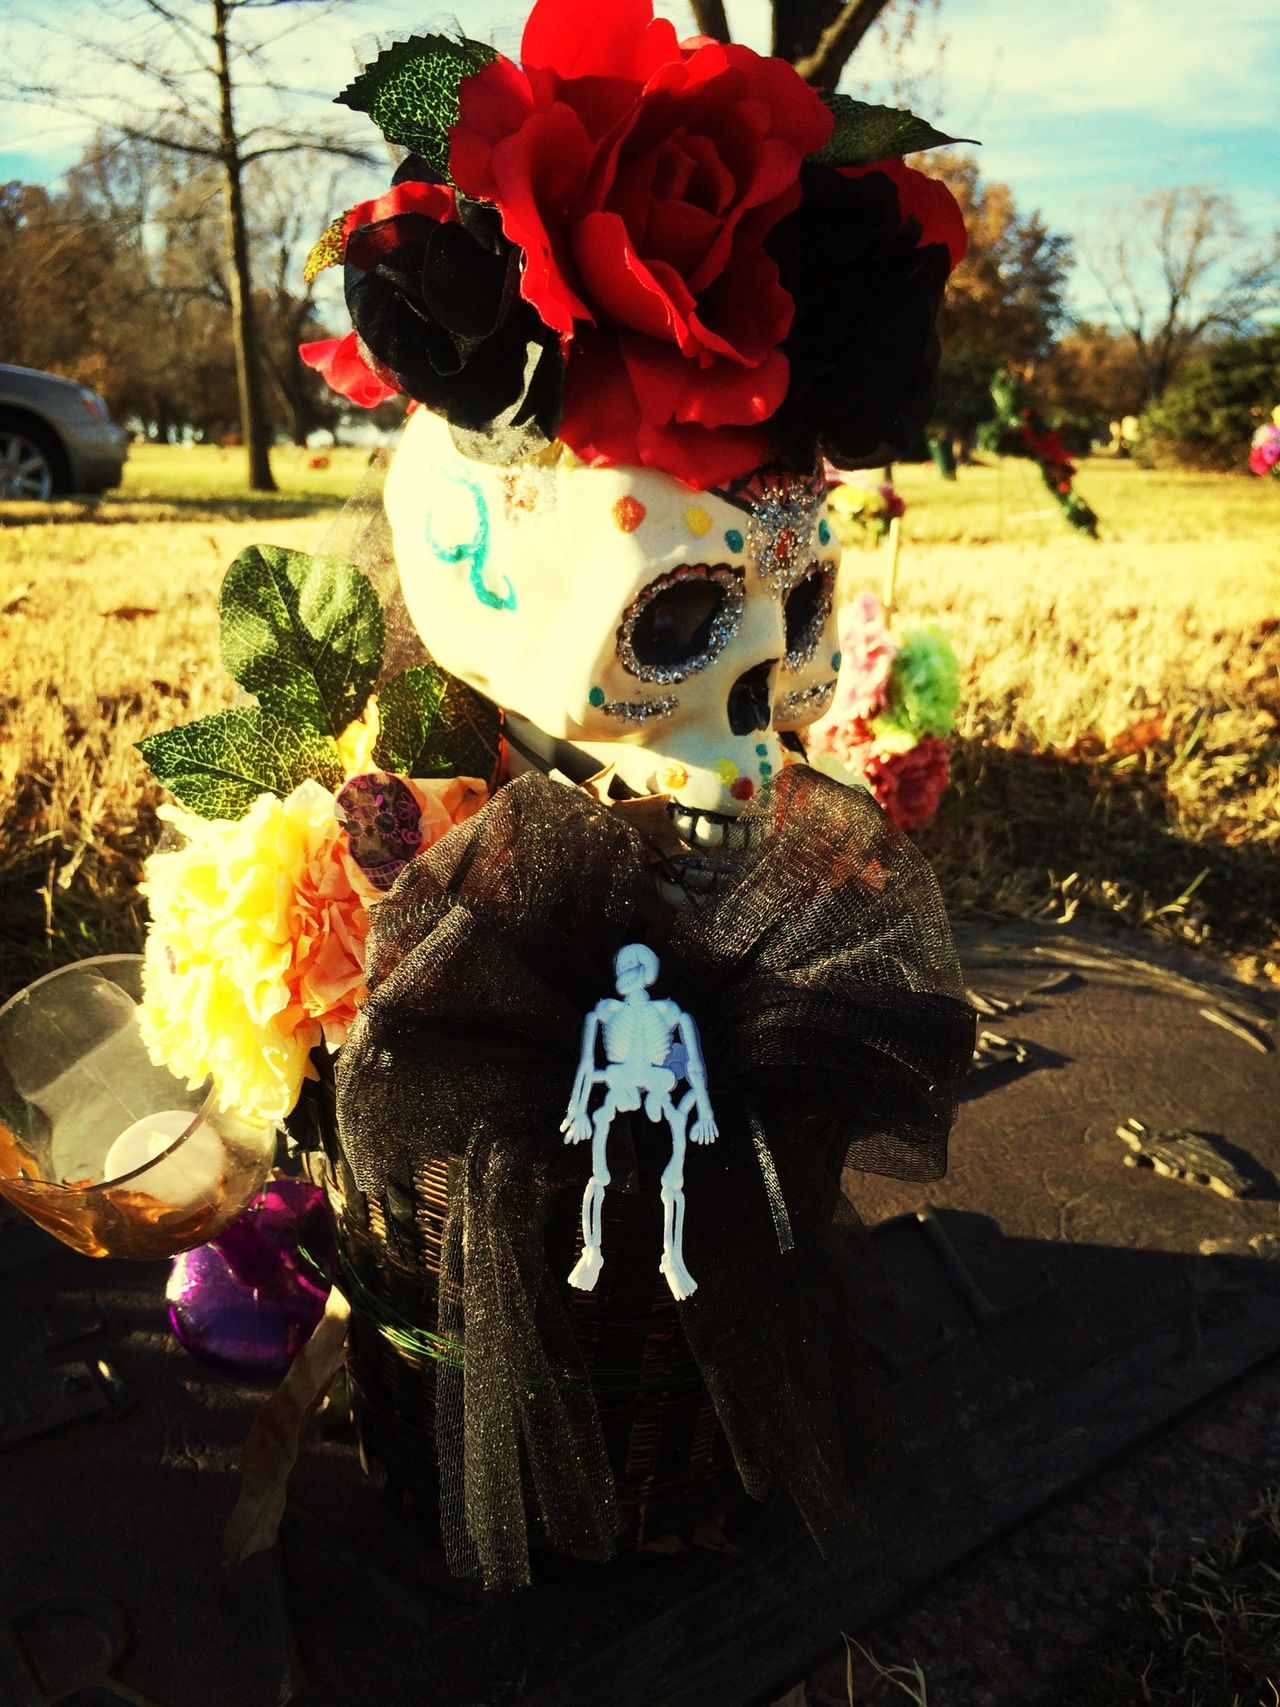 from Day of the Dead (Nov 1)